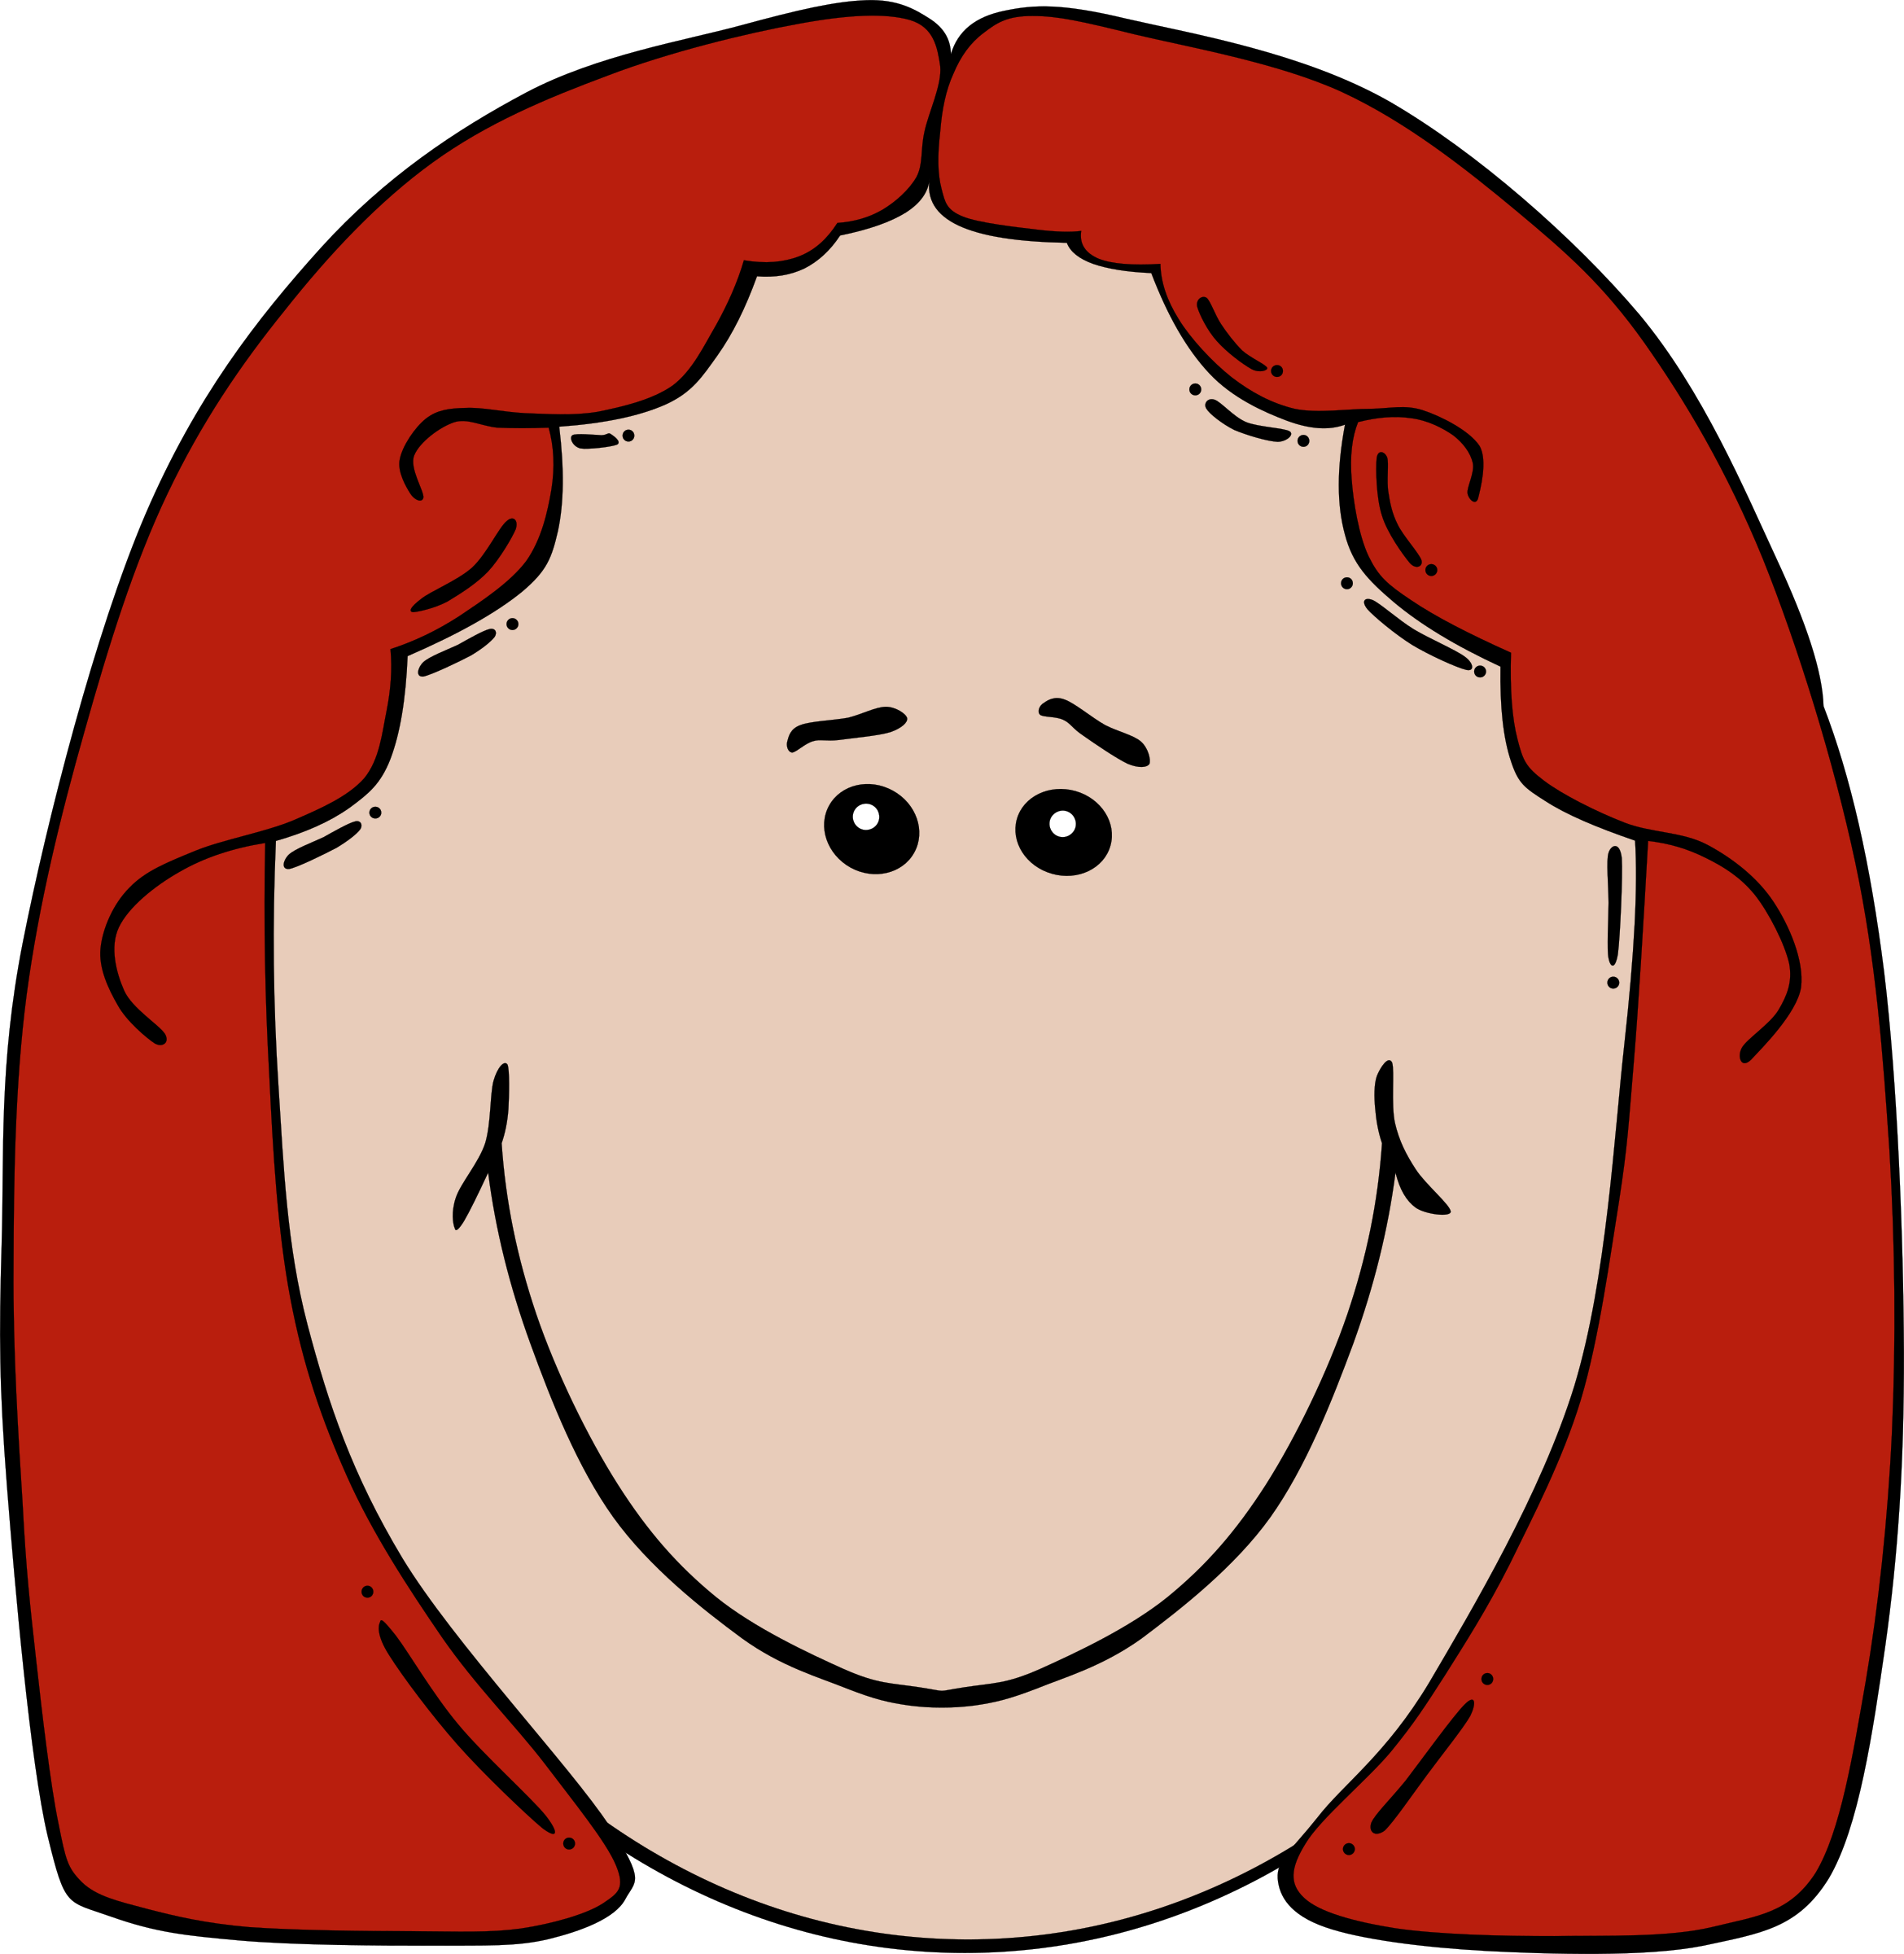 Face cartoon big image. Lady clipart animated